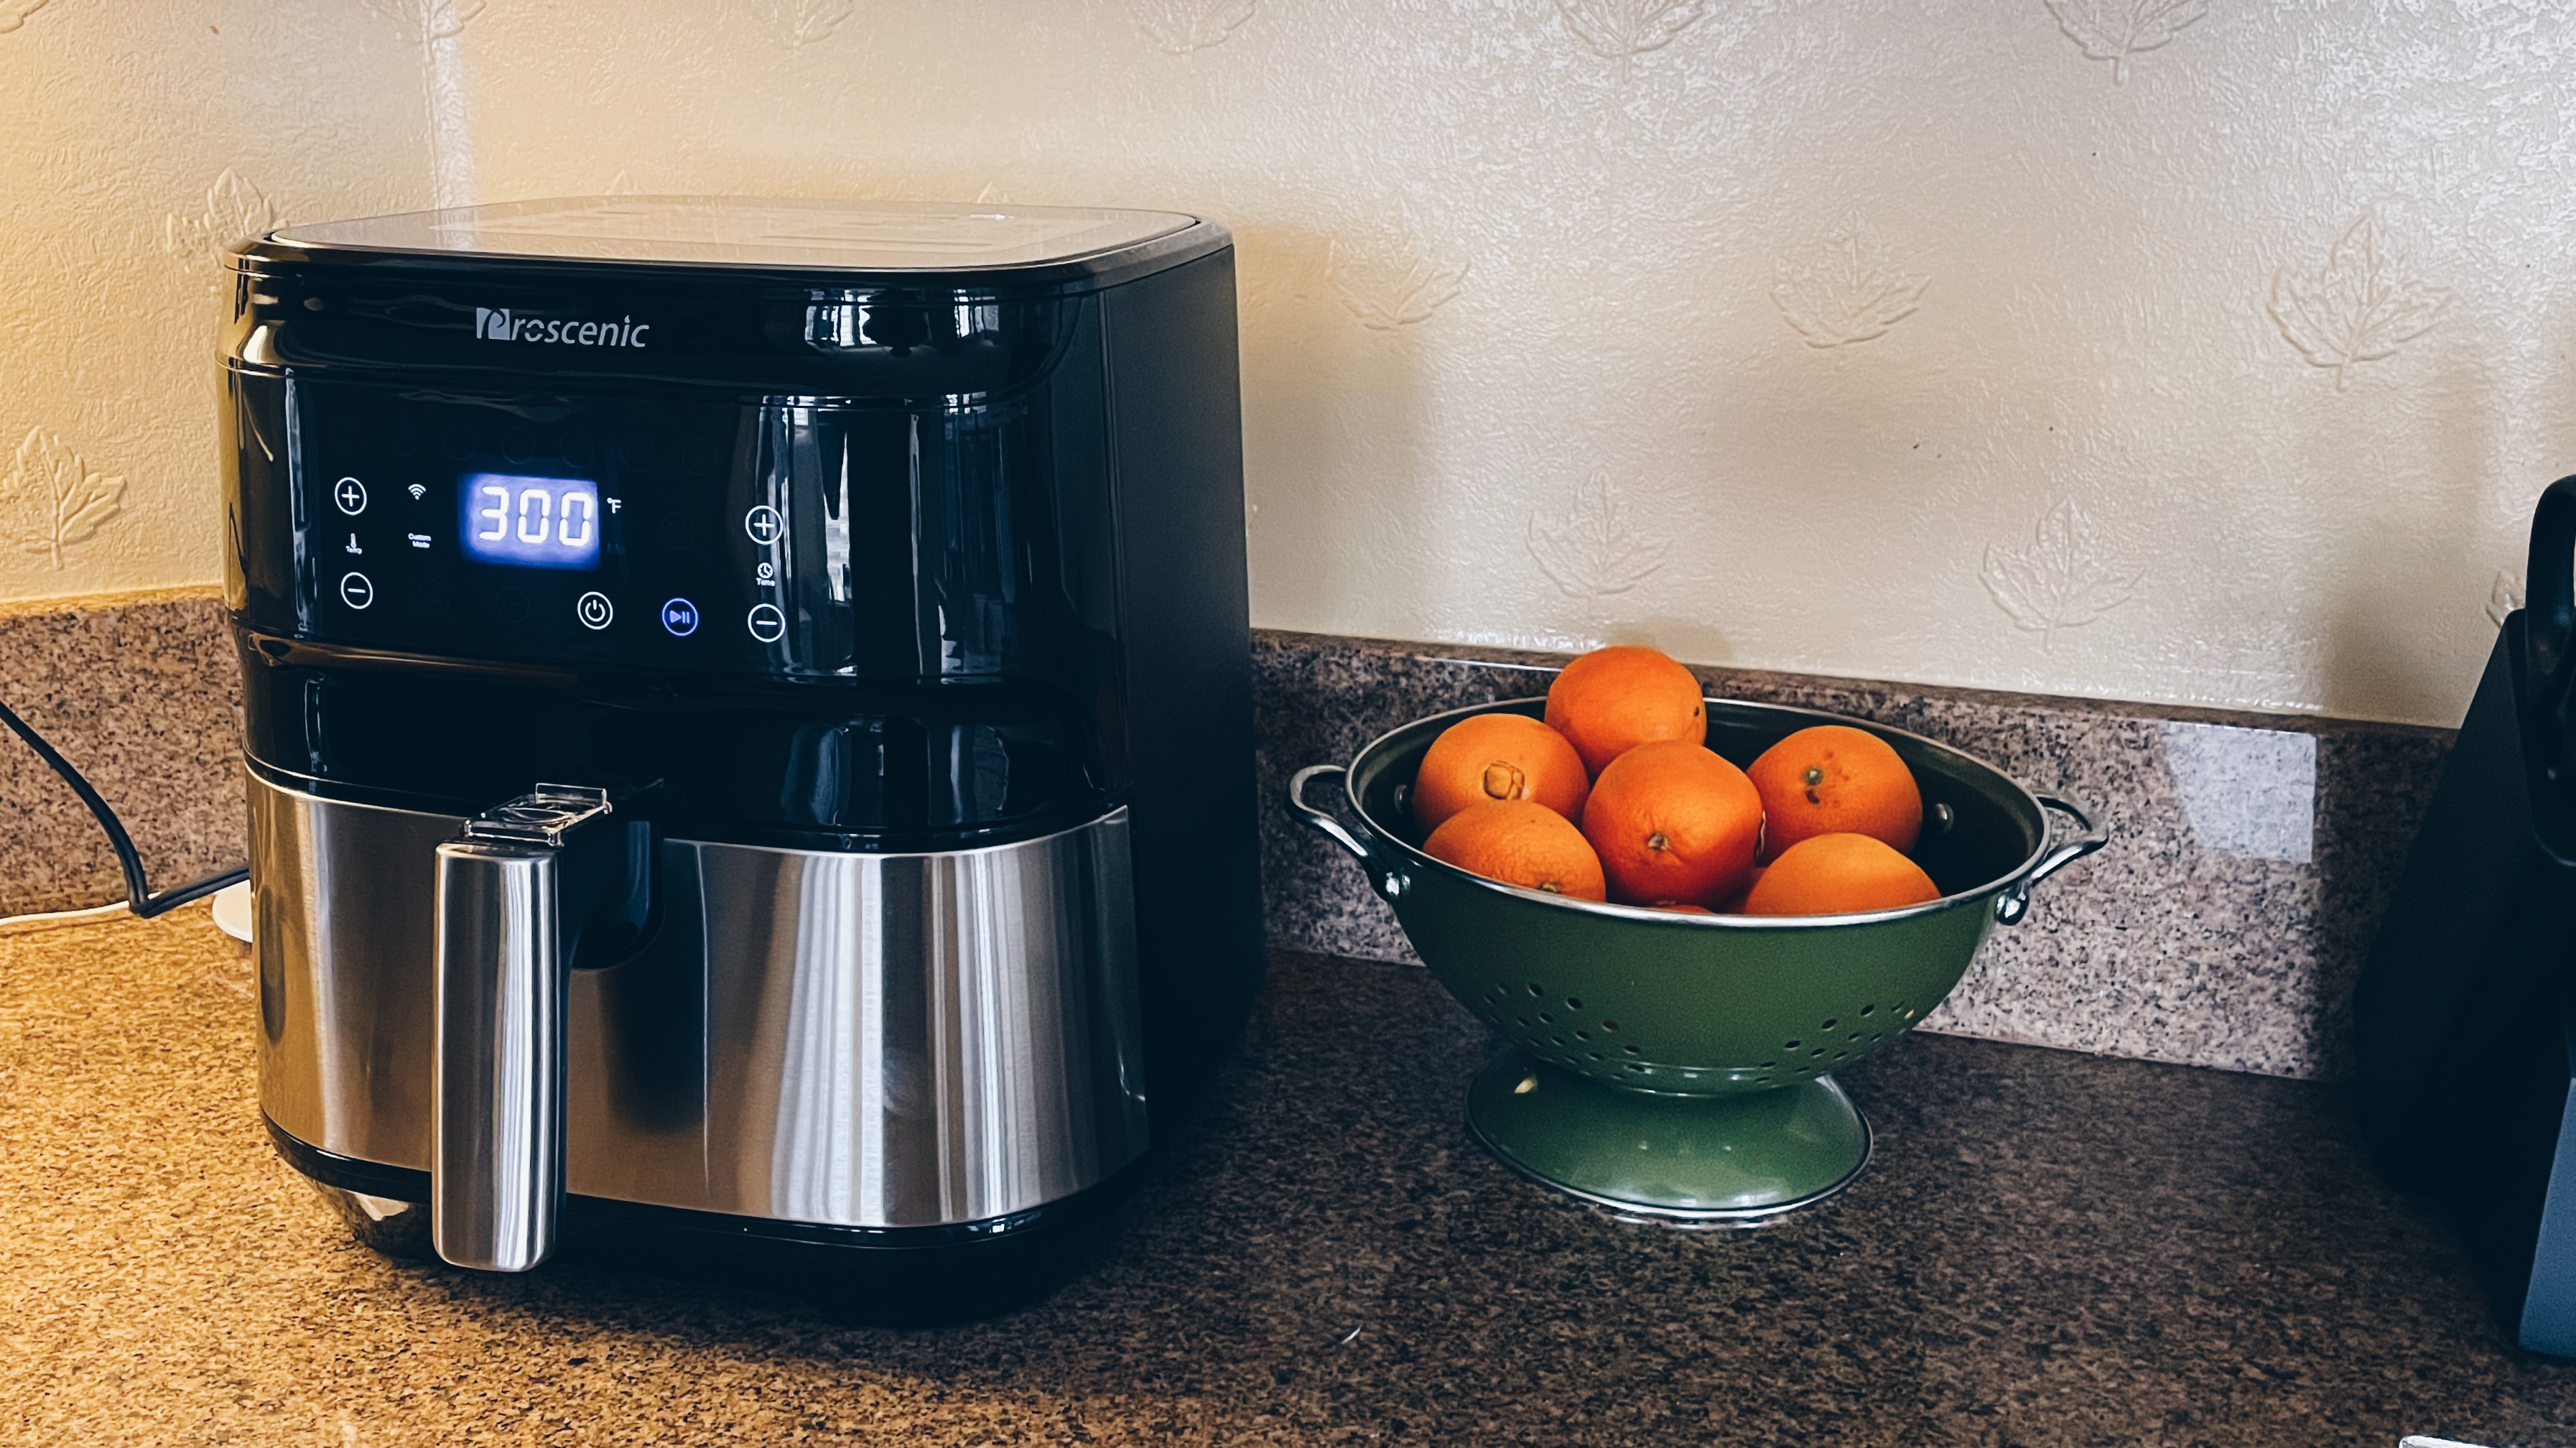 Proscenic T21 Smart Air Fryer Review: Alexa Tries to Get Cooking